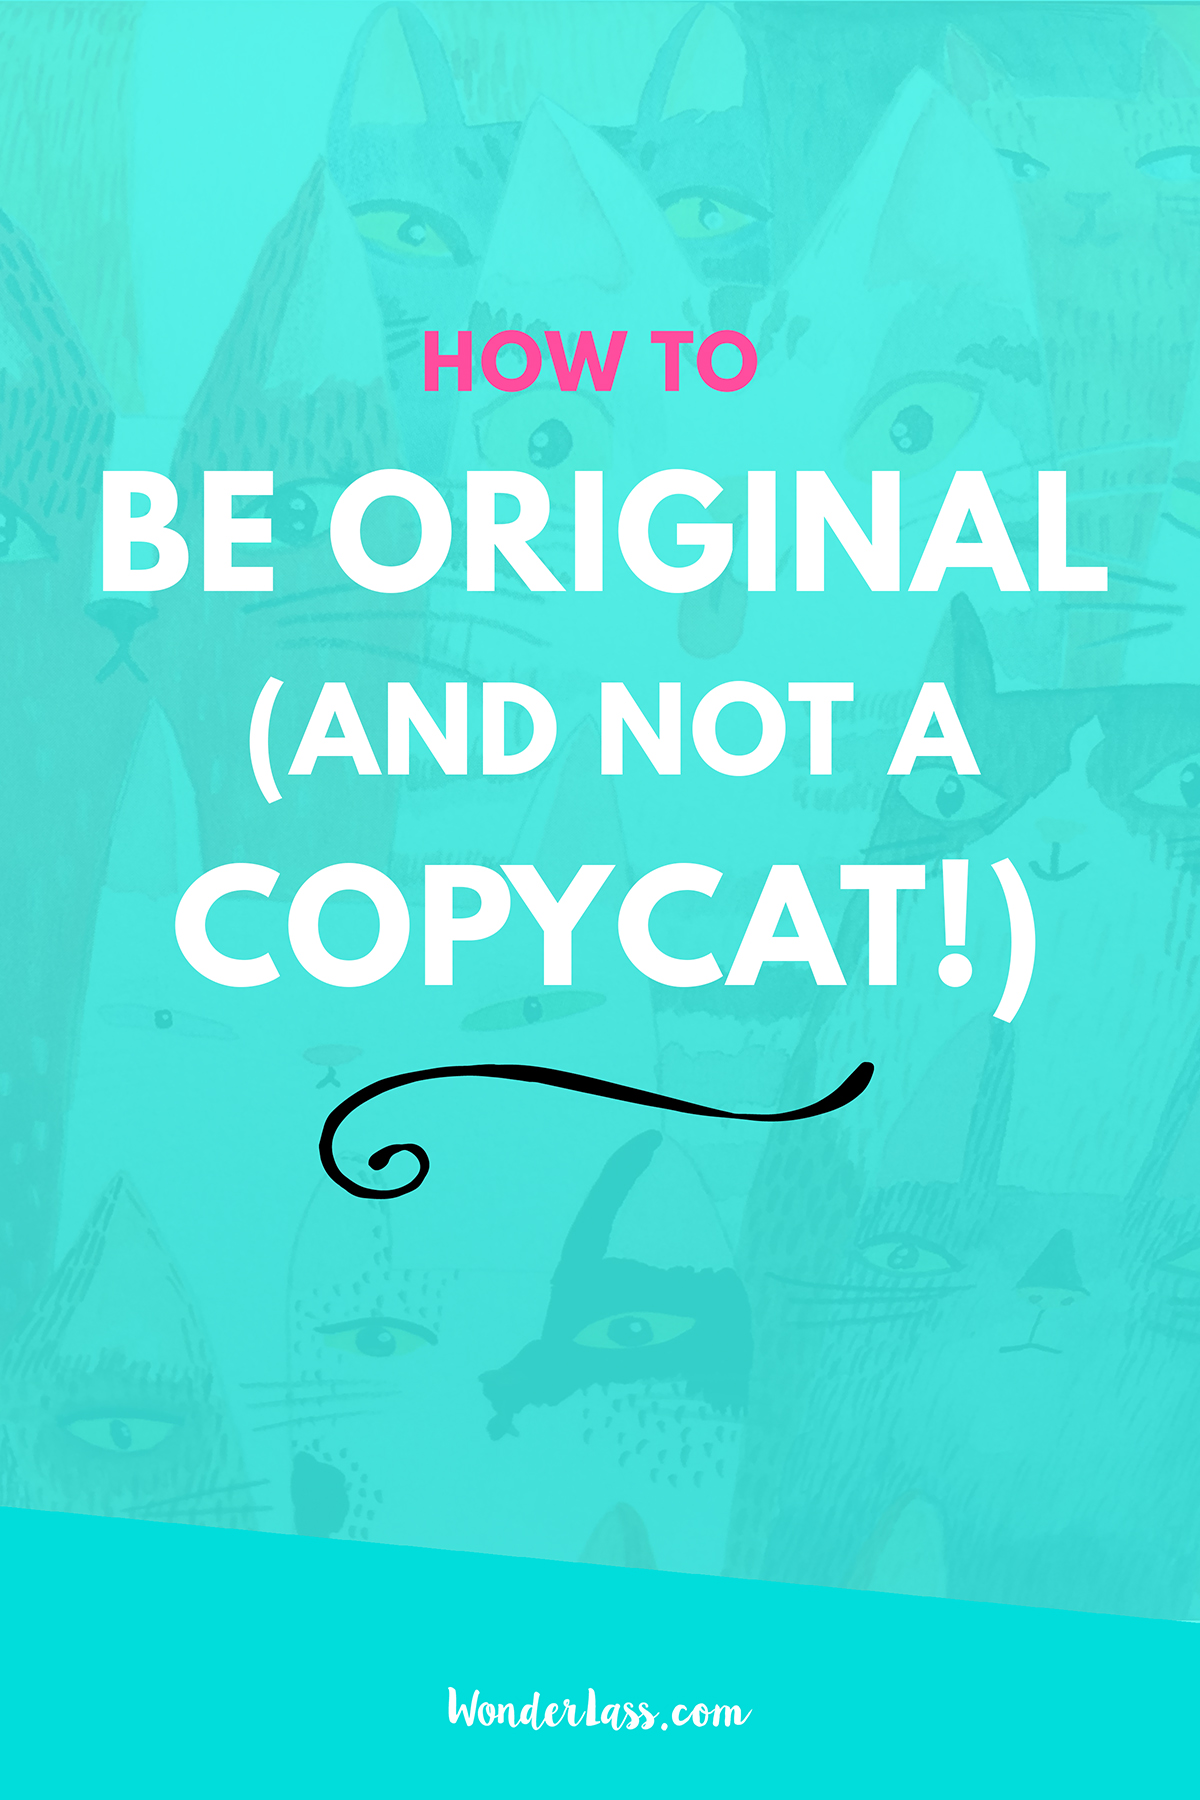 How to Be Original (And Not a Copycat!) Want to know how you can create original content as a blogger or entrepreneur? Check out this blog post! | Wonderlass